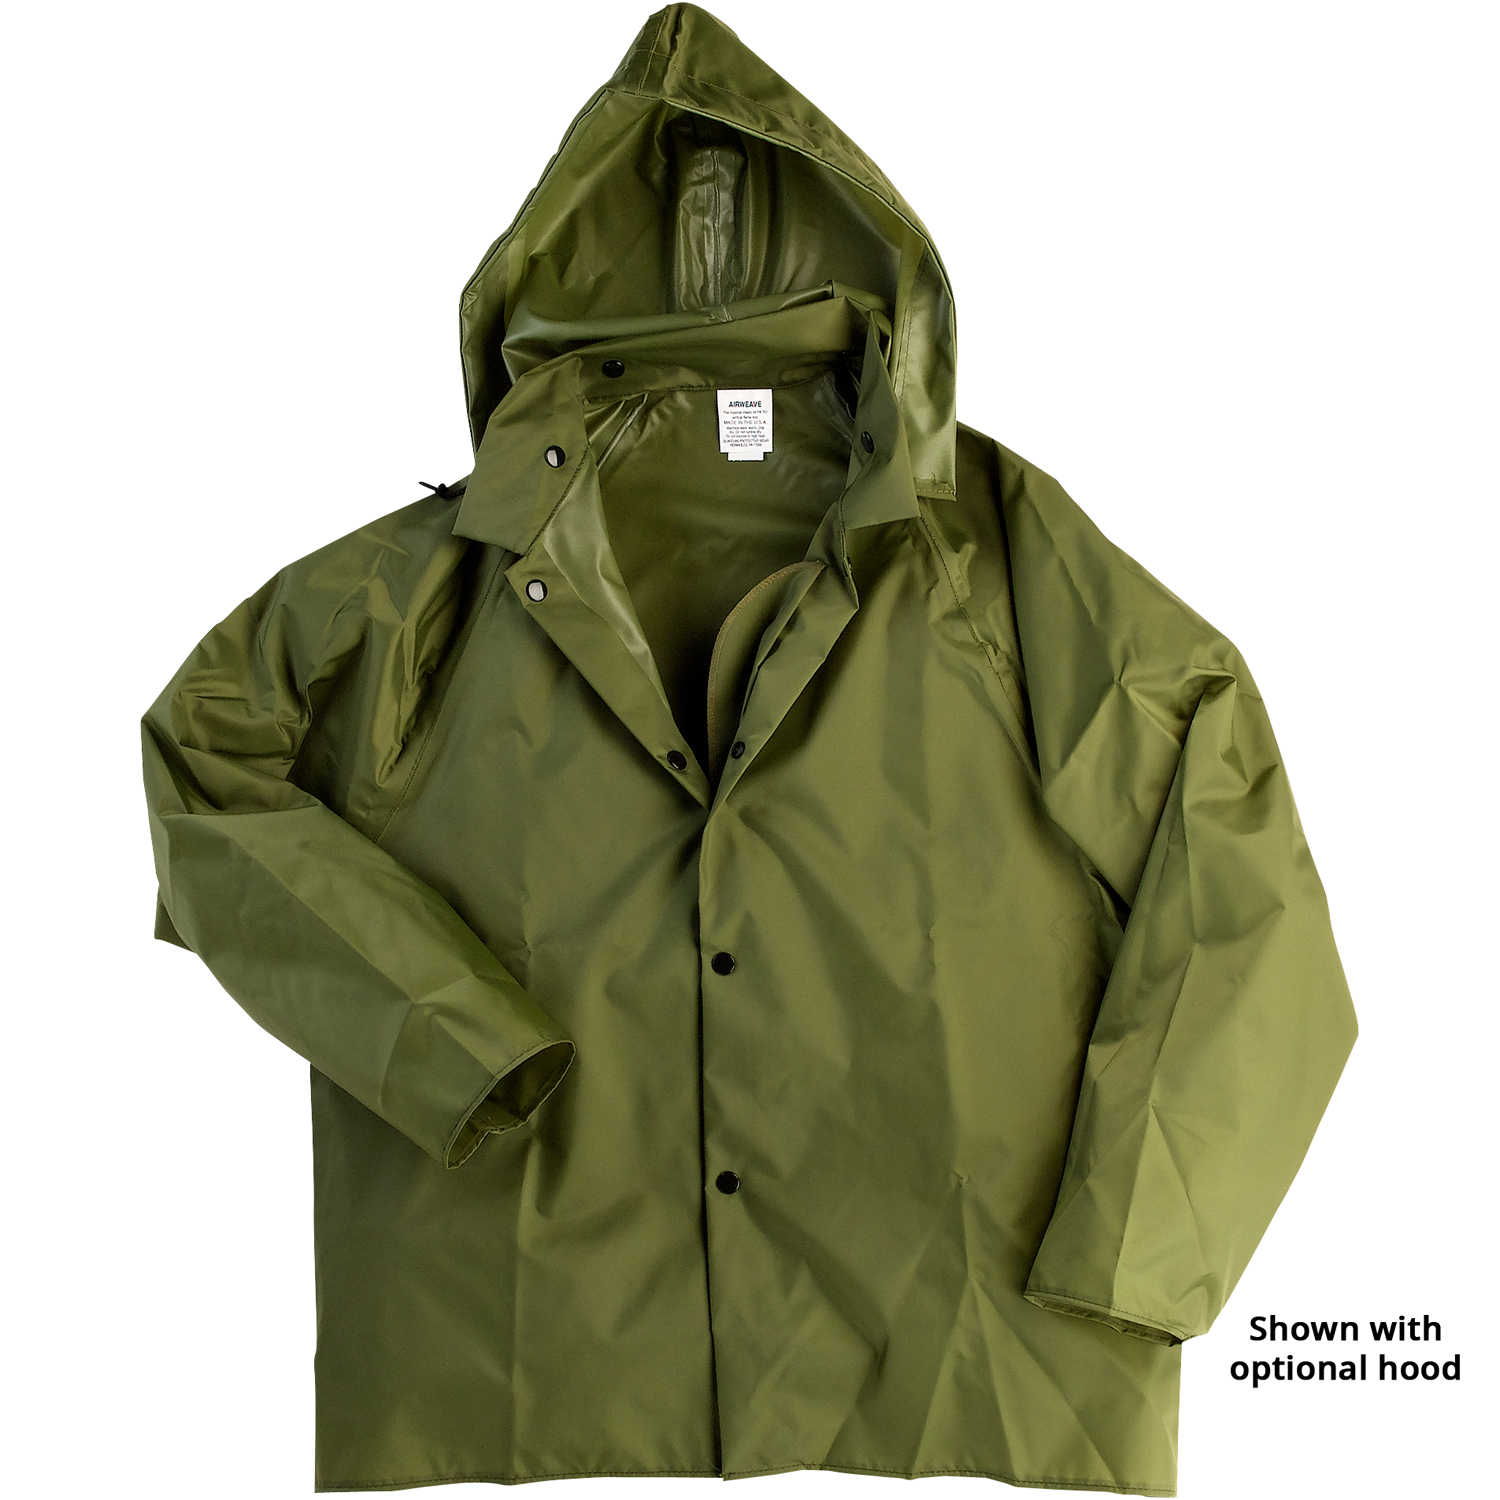 Air Weave Industrial Rain Jacket